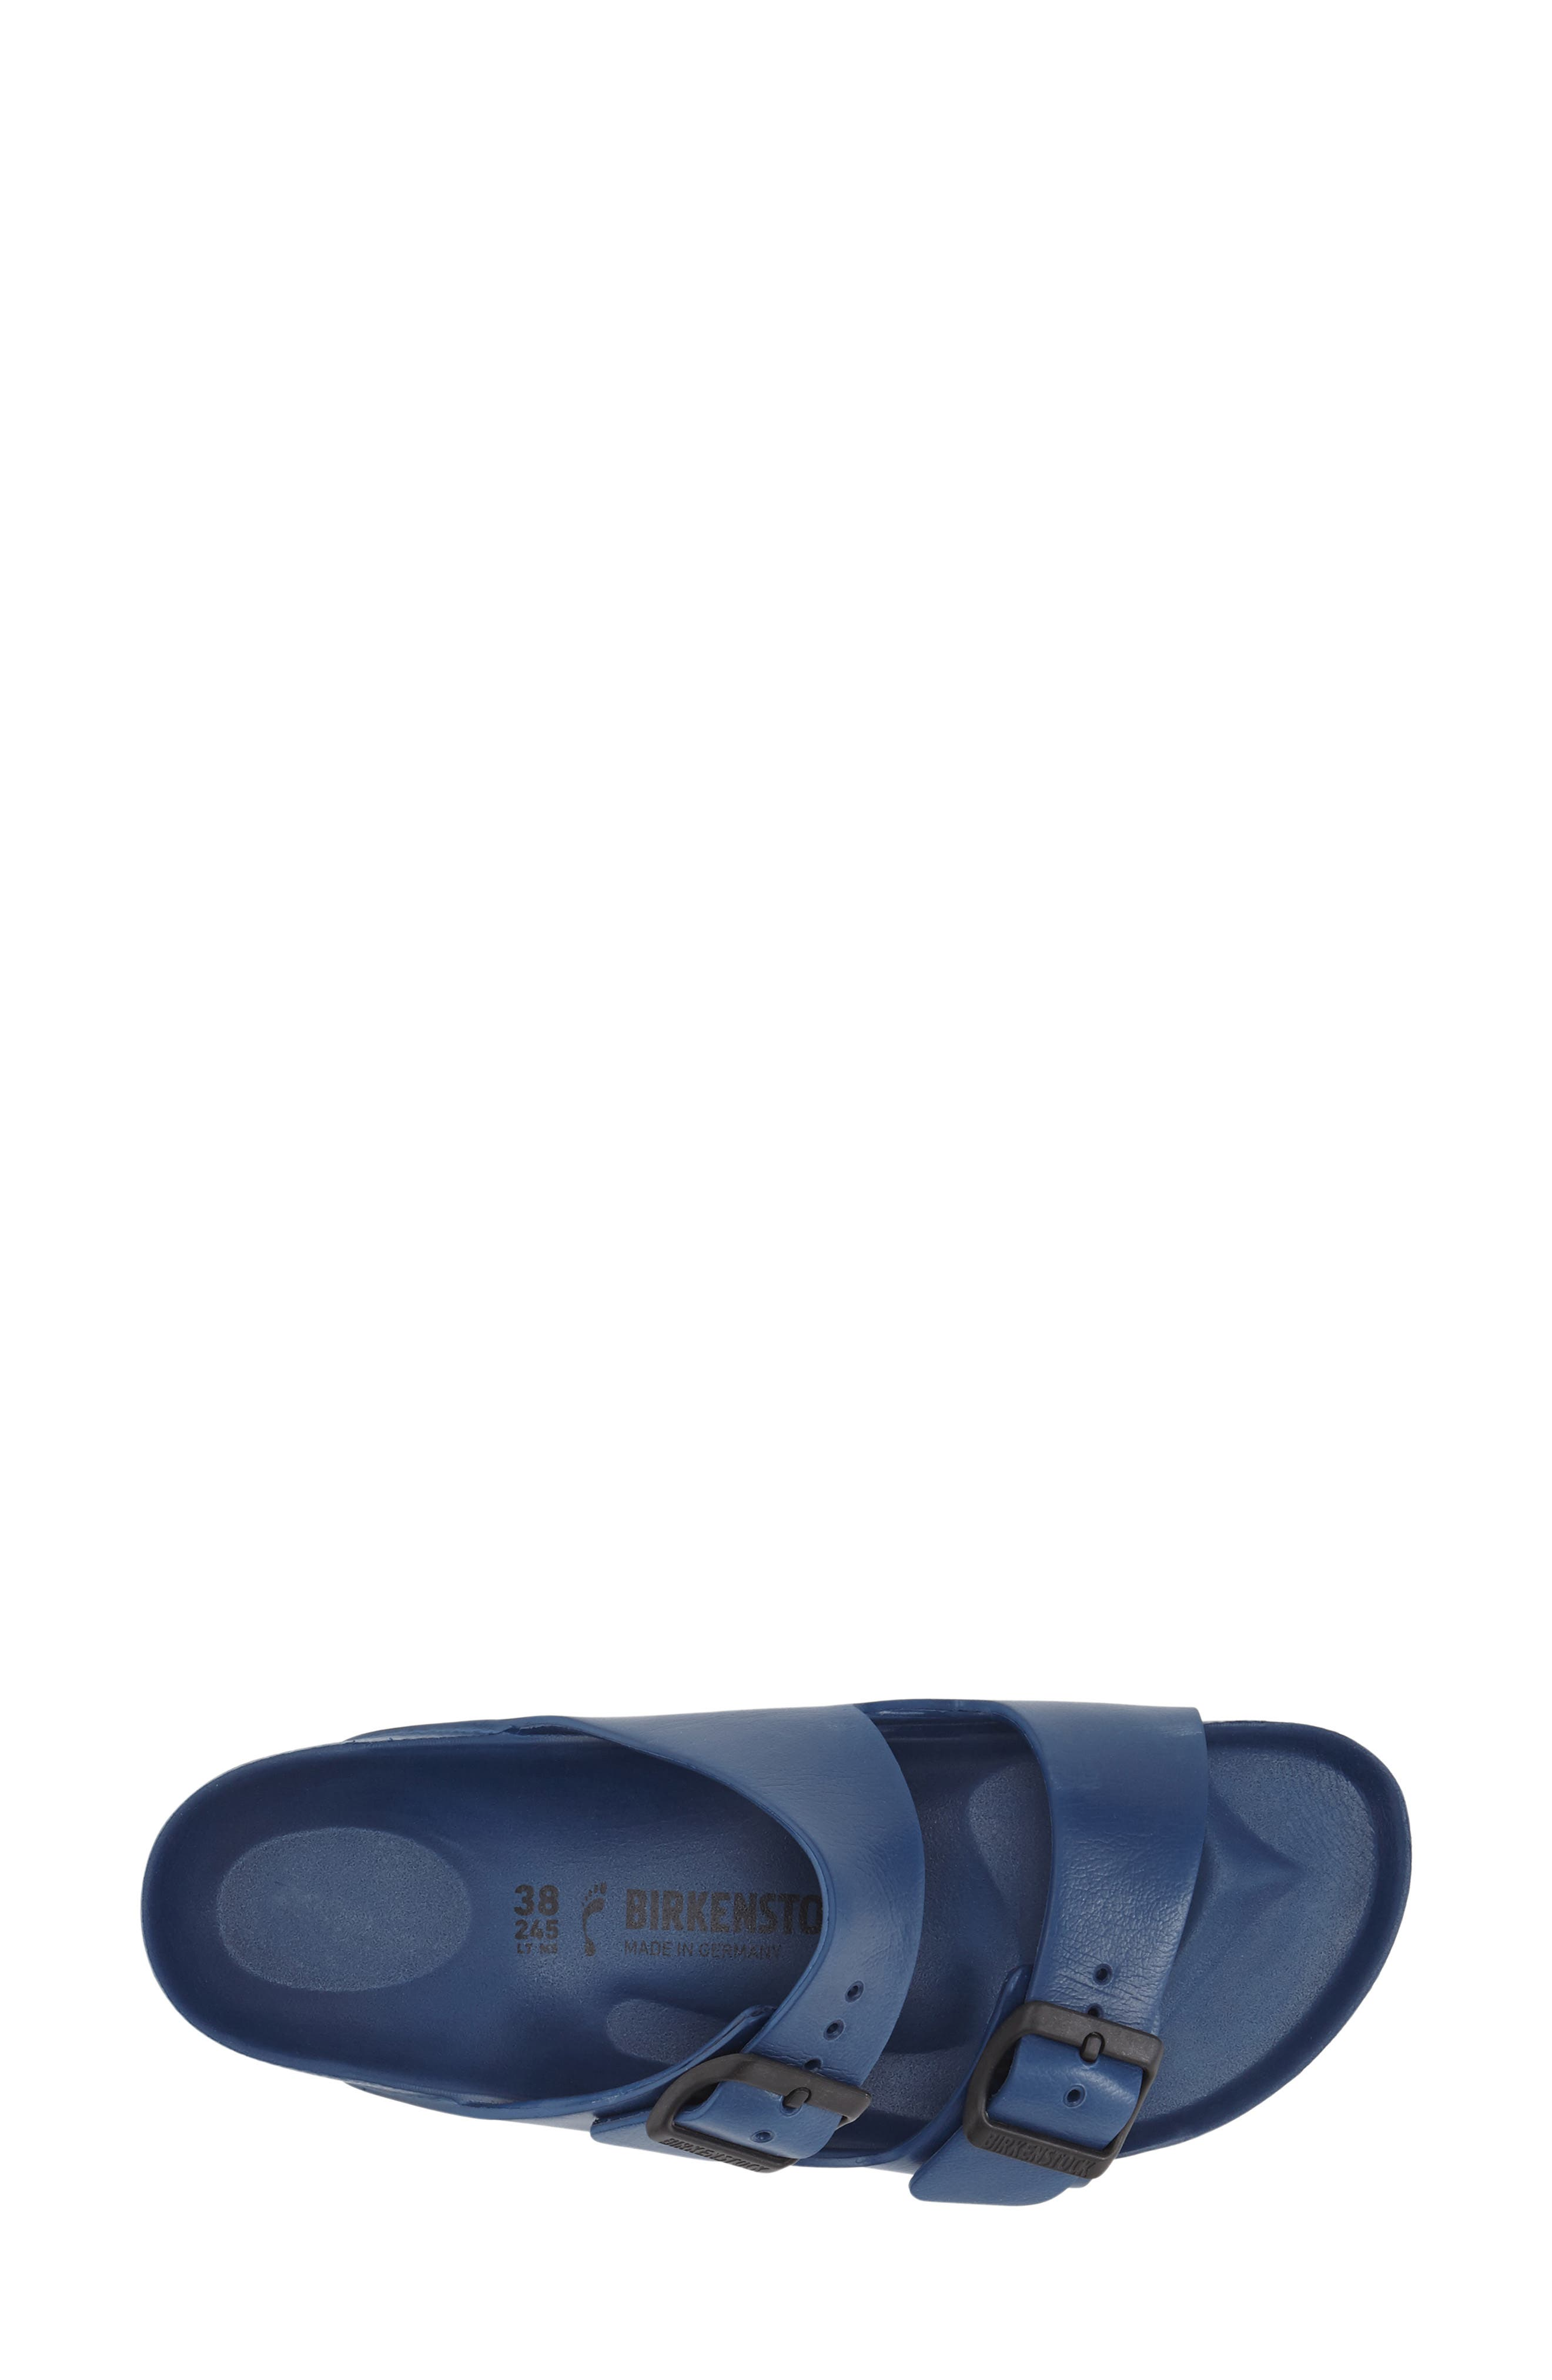 Essentials - Arizona Slide Sandal,                             Alternate thumbnail 3, color,                             NAVY EVA